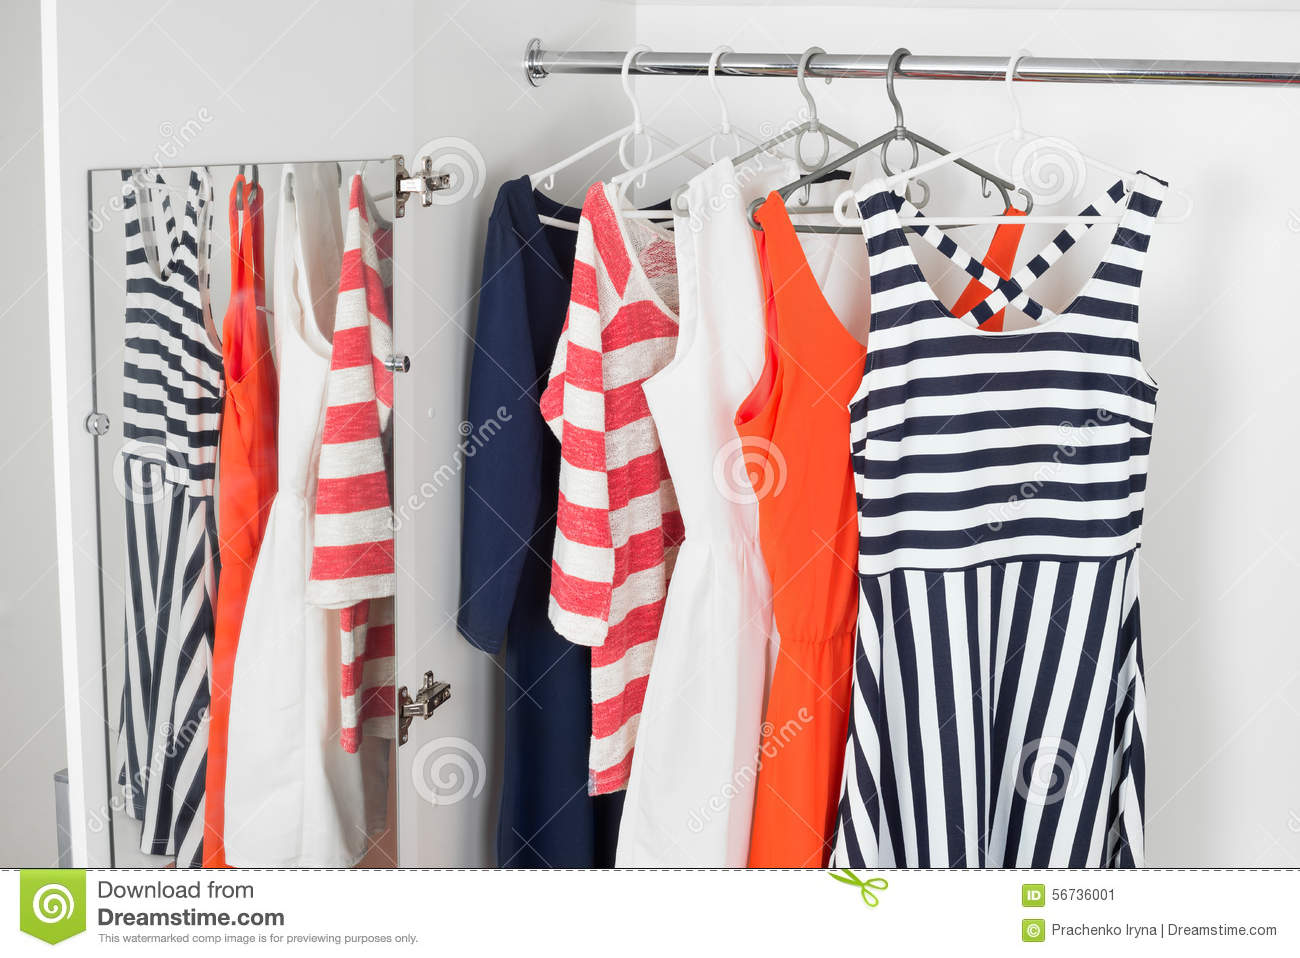 b49eb7bd314 A series of bright modern fashion women s dresses on hangers in a white  cupboard for summer and spring